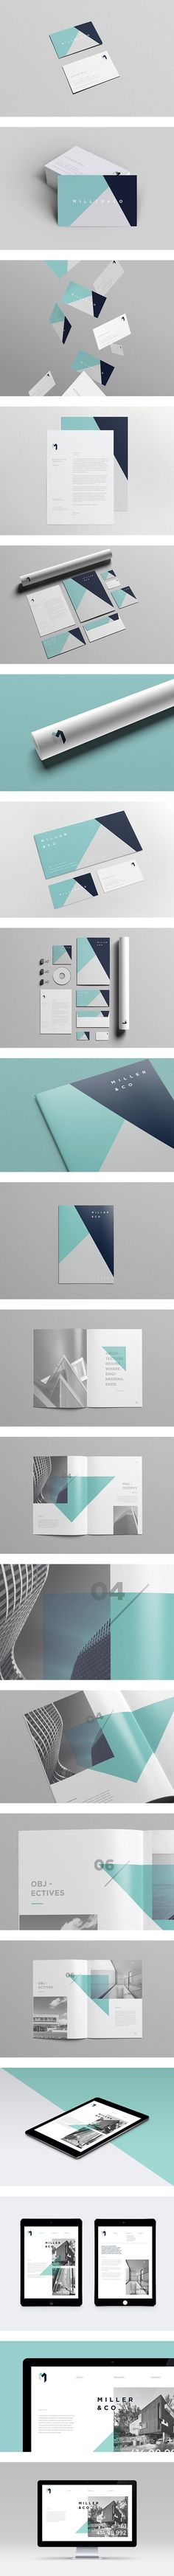 Miller & Co identity by James Fitzgerald (branding and editorial design) Web Design, Id Card Design, Logo Design, Brand Identity Design, Graphic Design Typography, Layout Design, Branding Design, Letterhead Design, Brochure Design